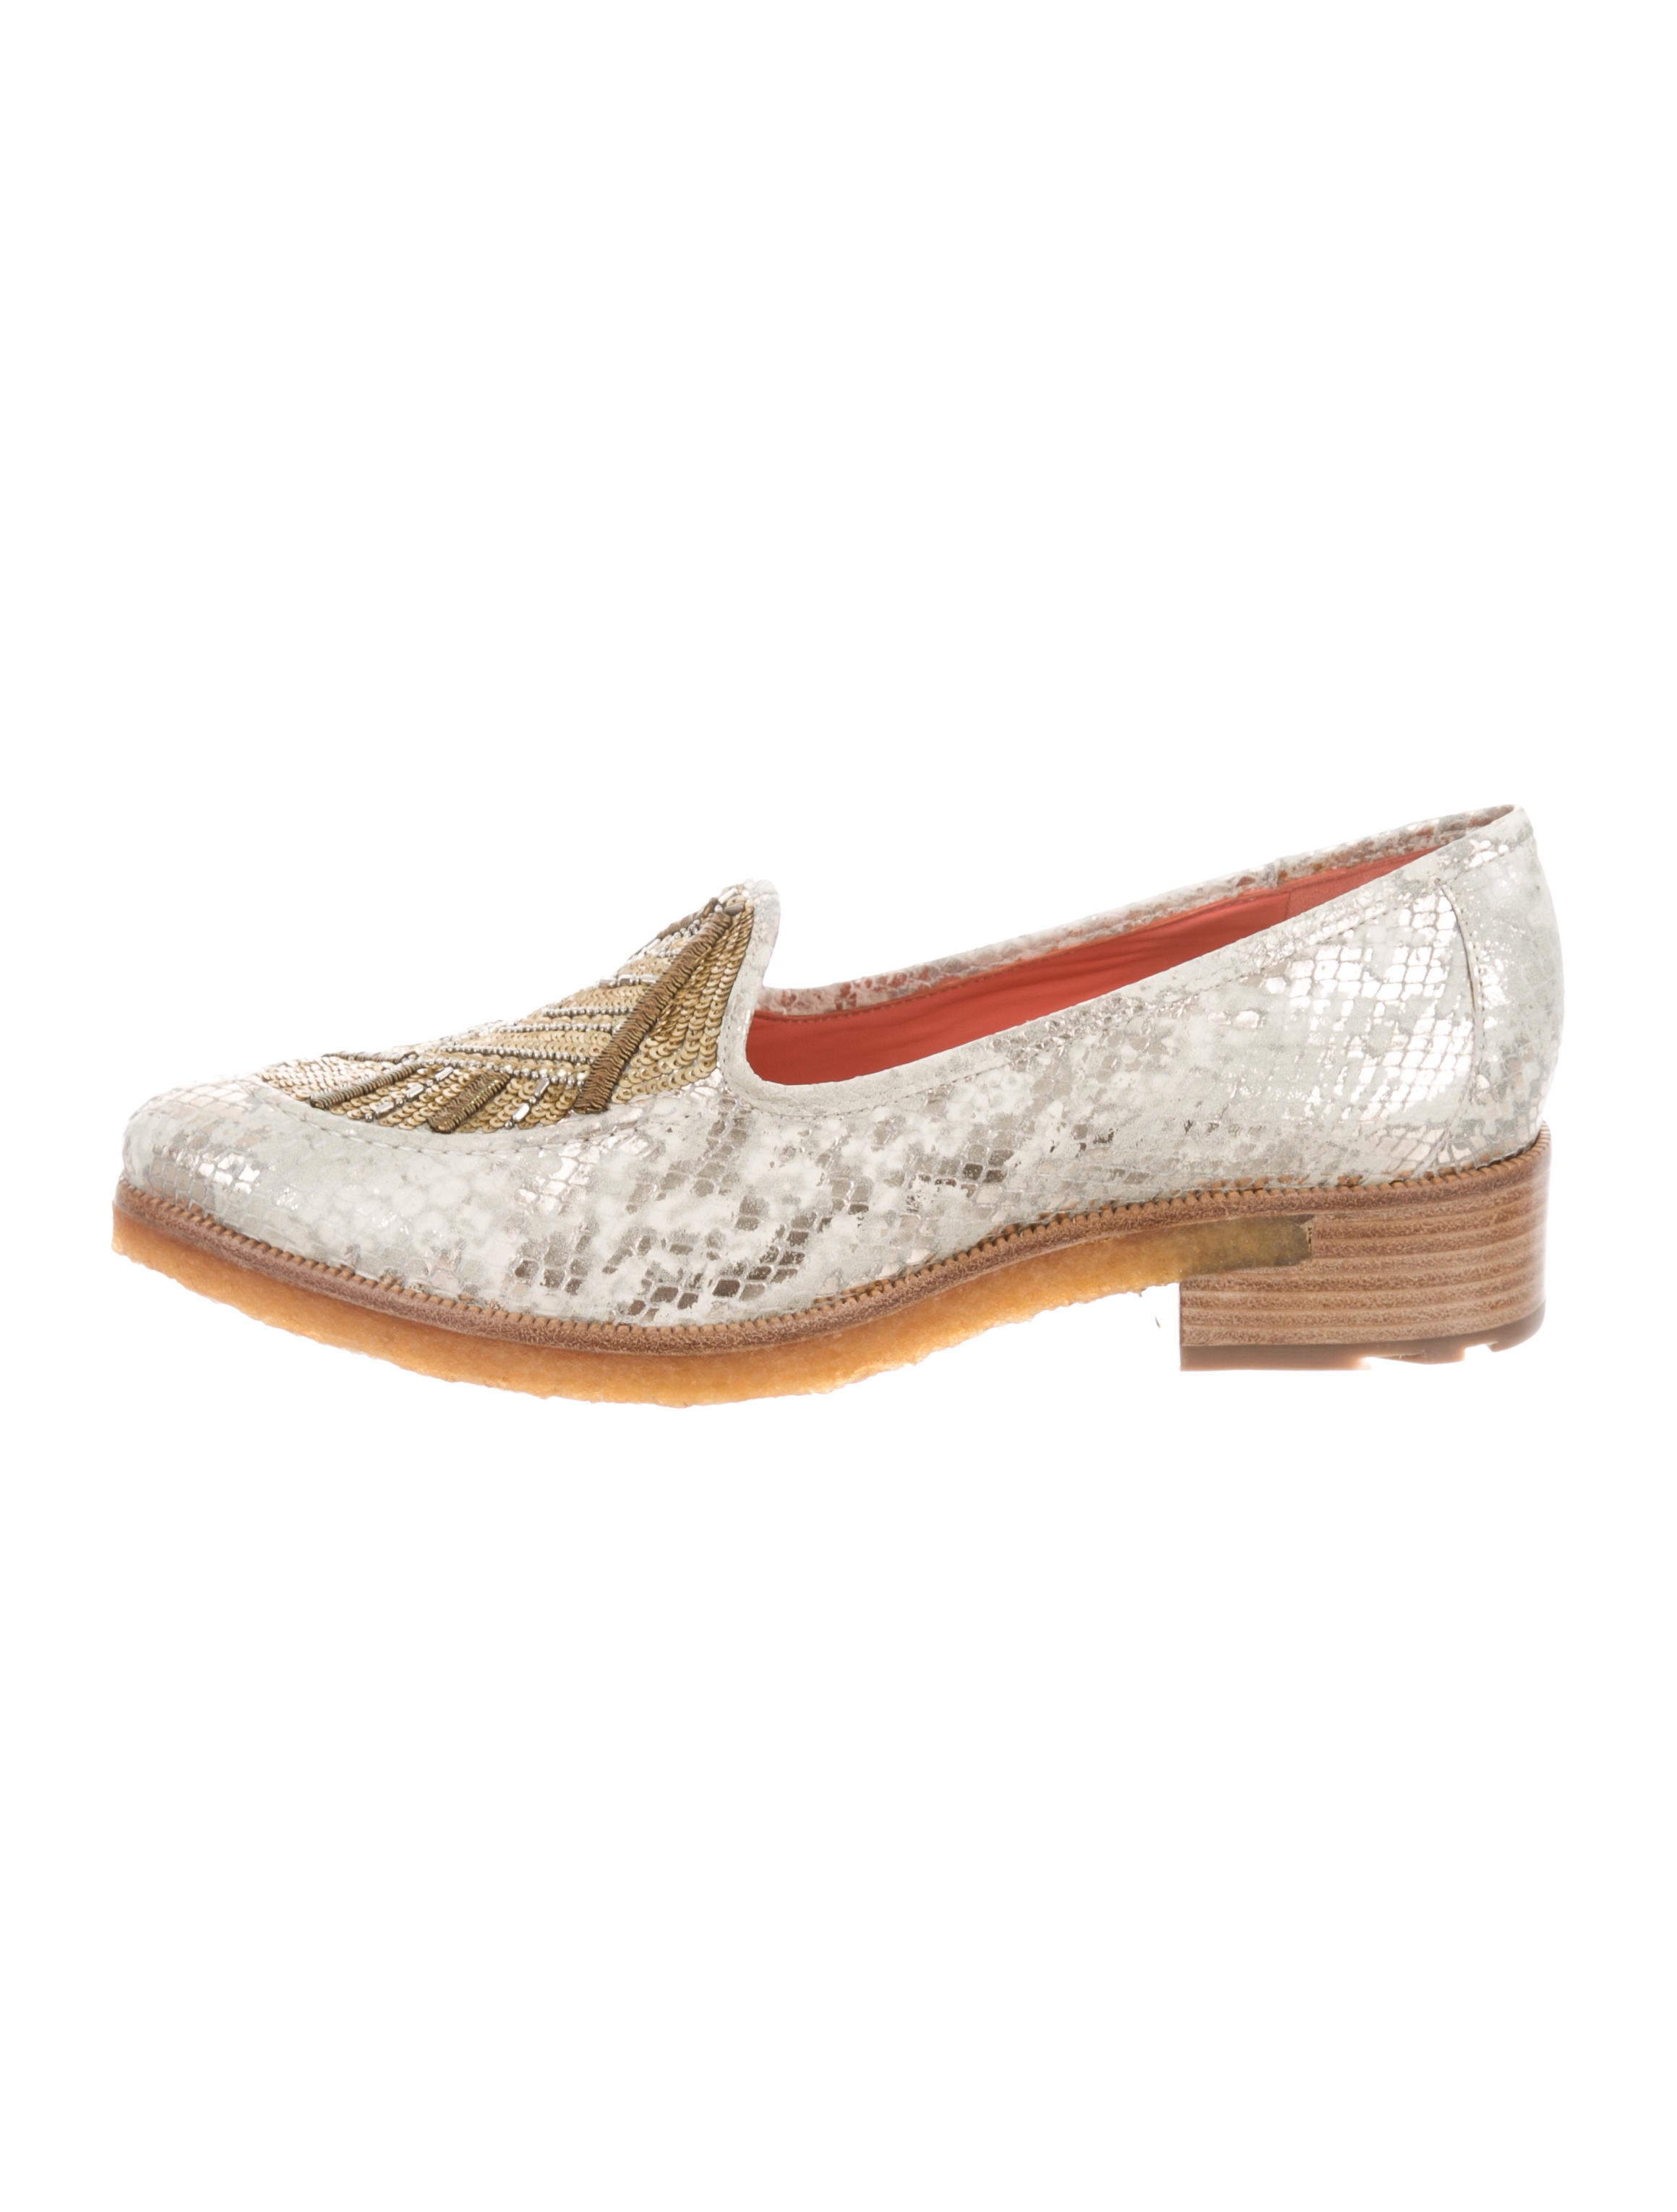 Femmes Sans Peur Trixy Embellished Loafers w/ Tags cheap sale wholesale price clearance cheapest price 1knmqeRJx